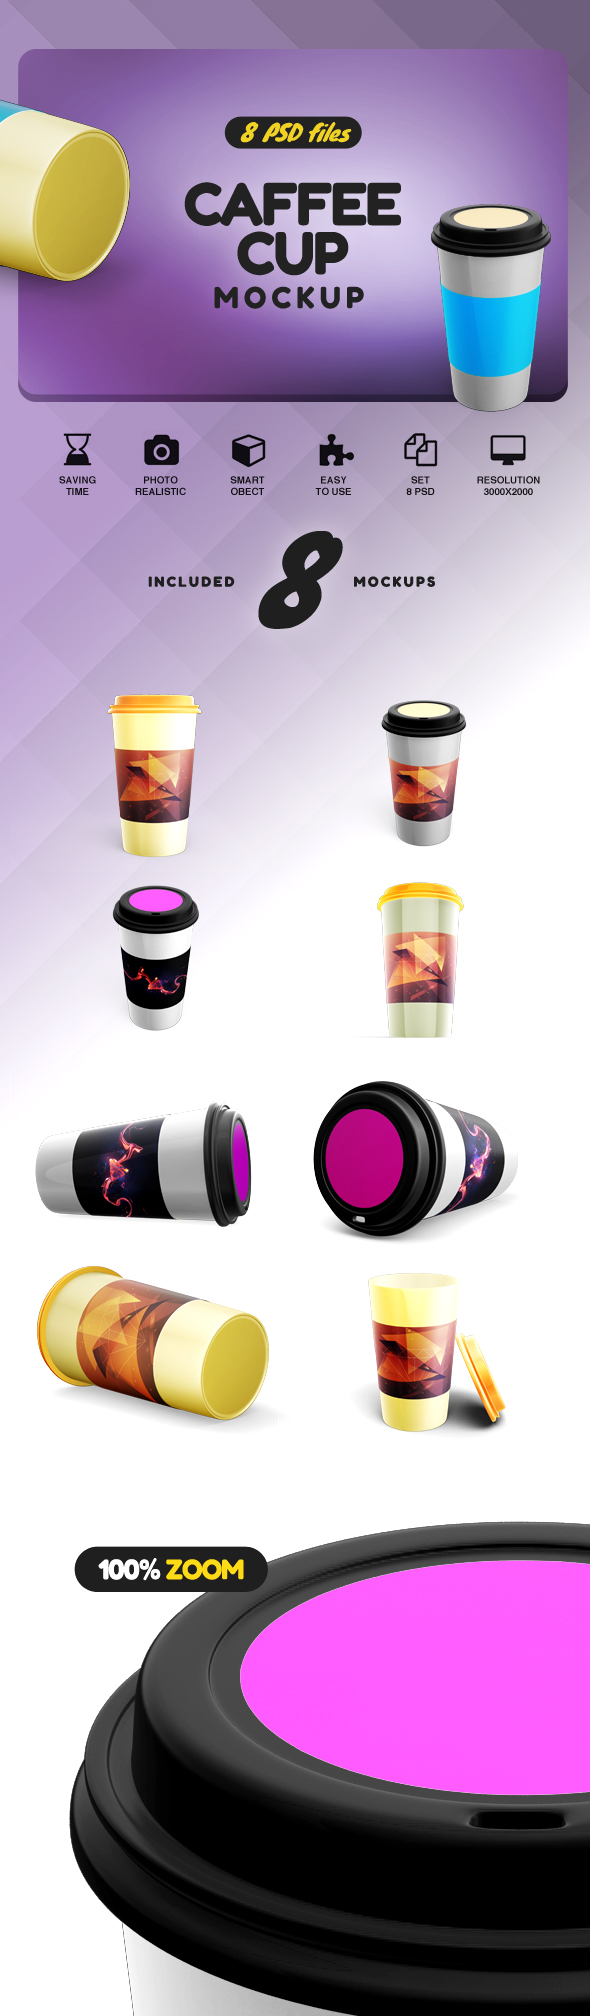 Caffee Cup Mockup example image 2